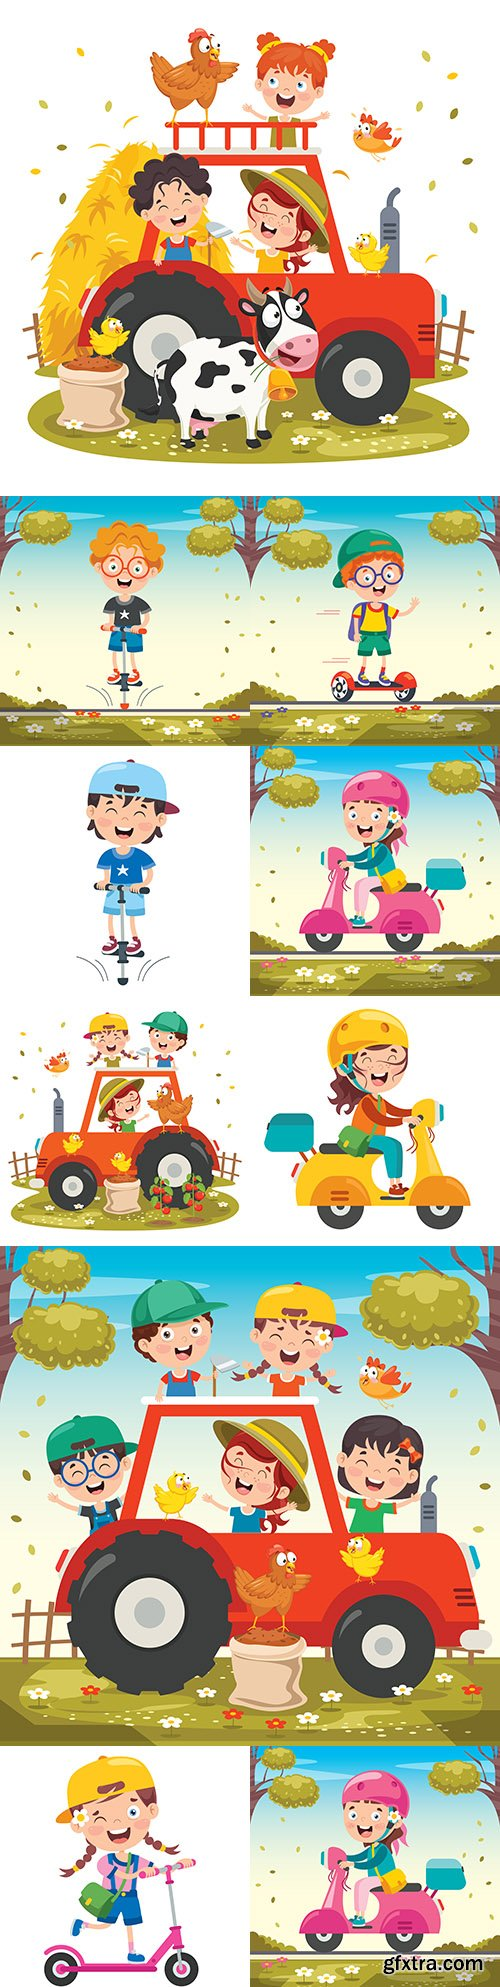 Happy children on scooter in helmet ride and play